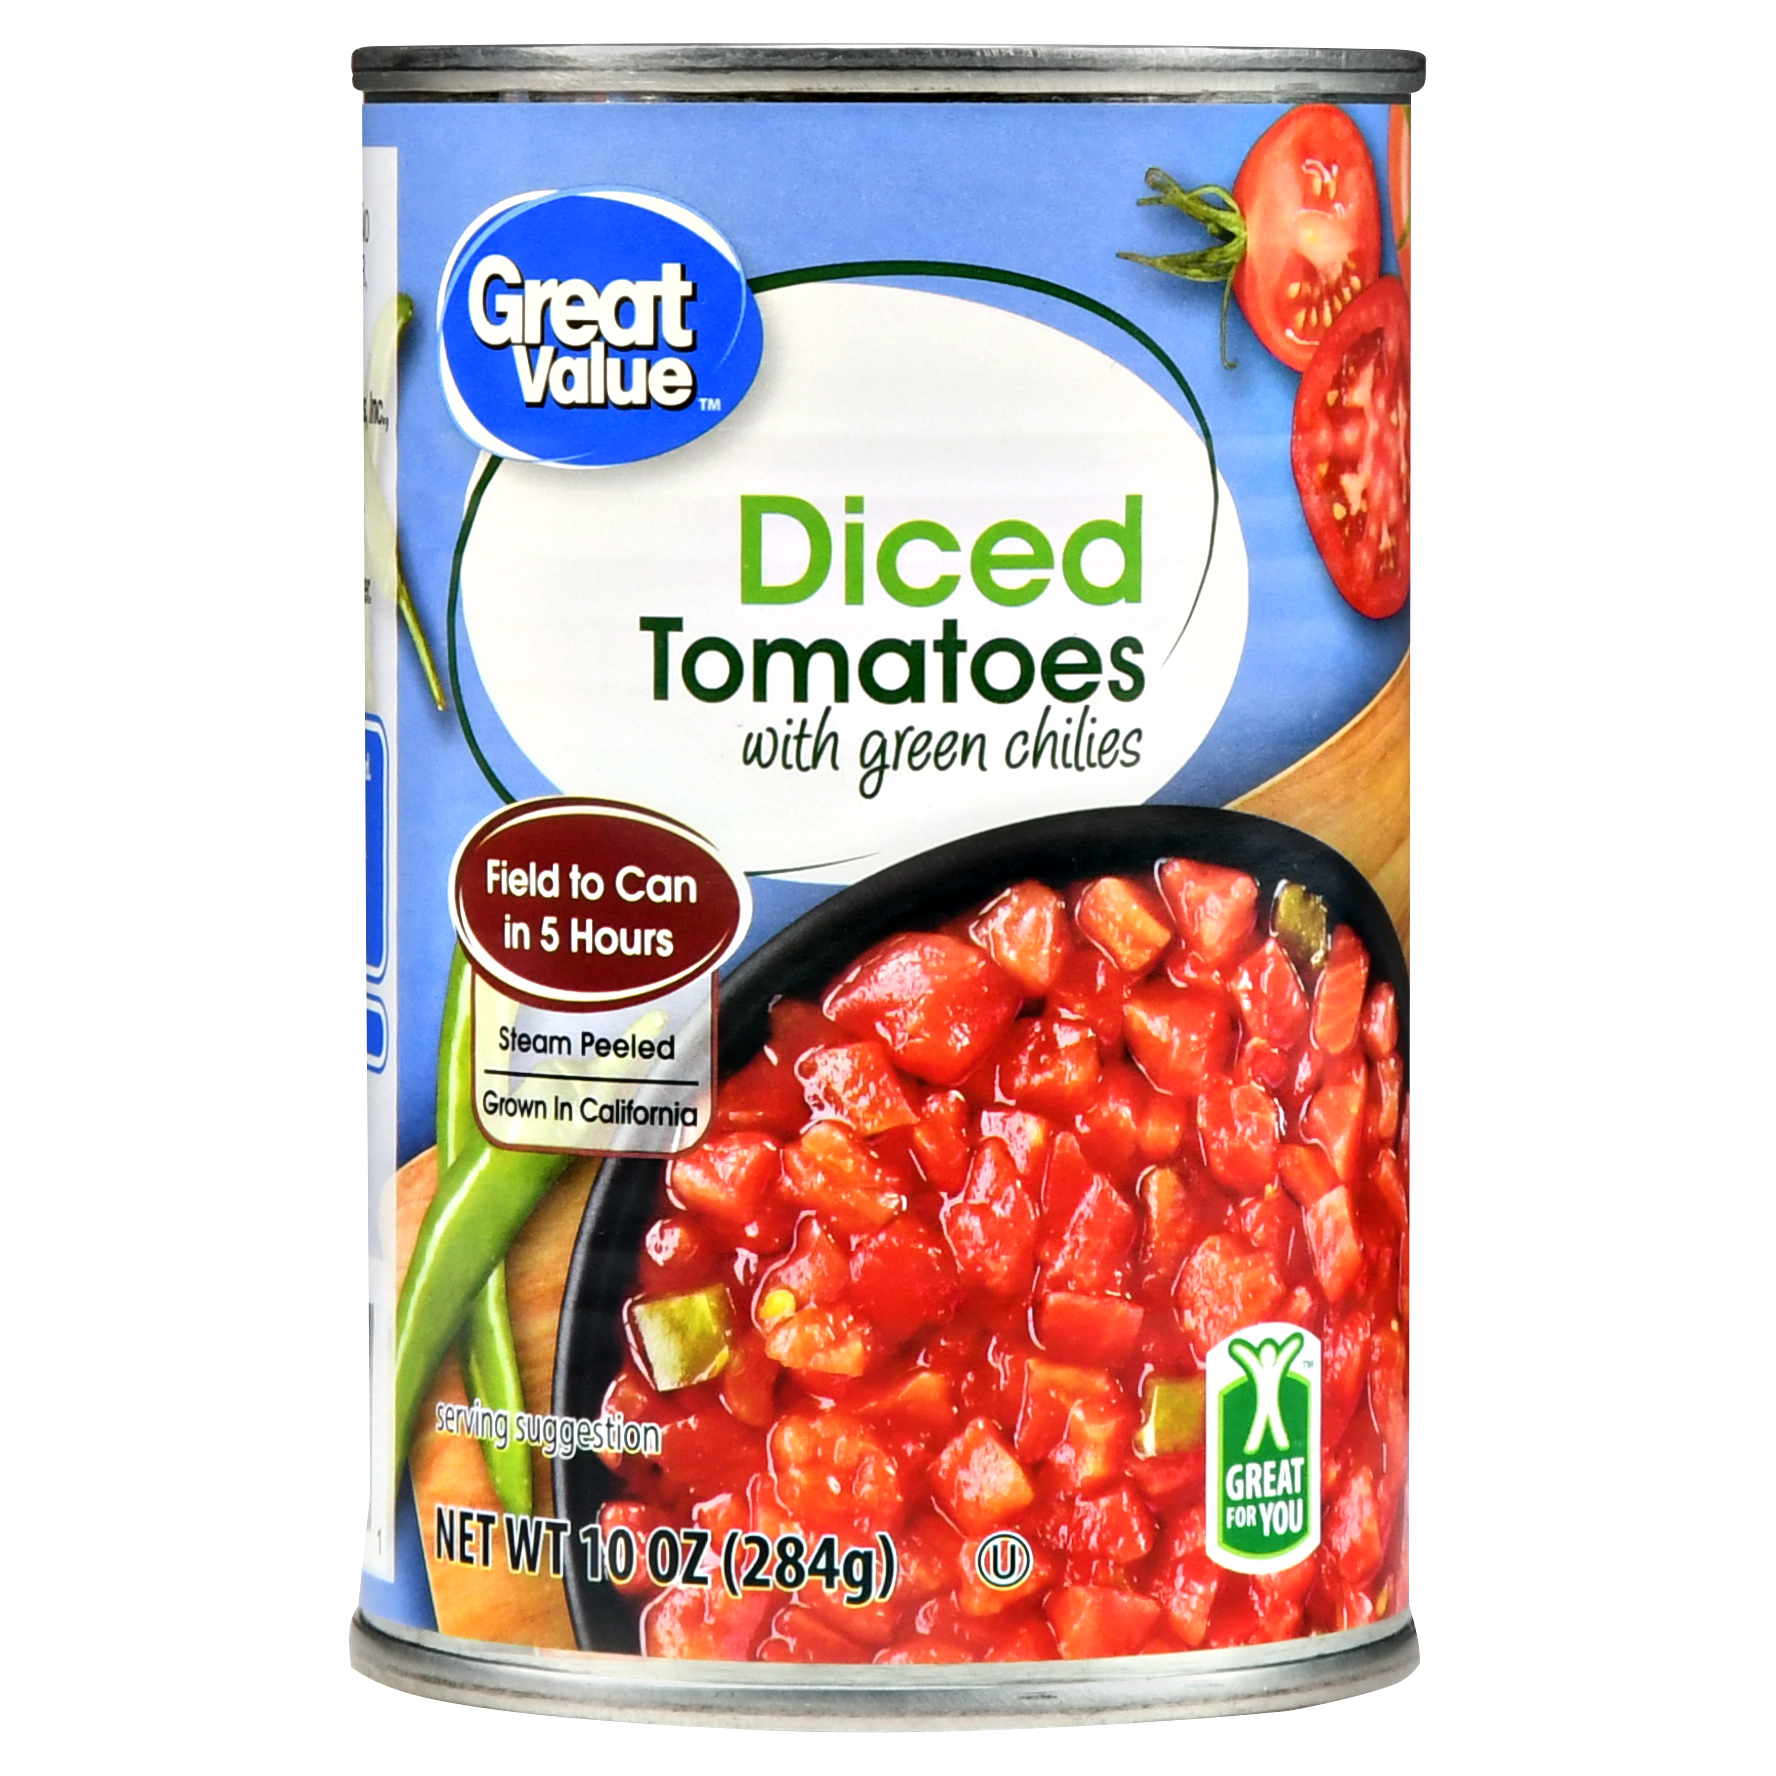 Great Value Diced Tomatoes with Green Chilies, 10 oz